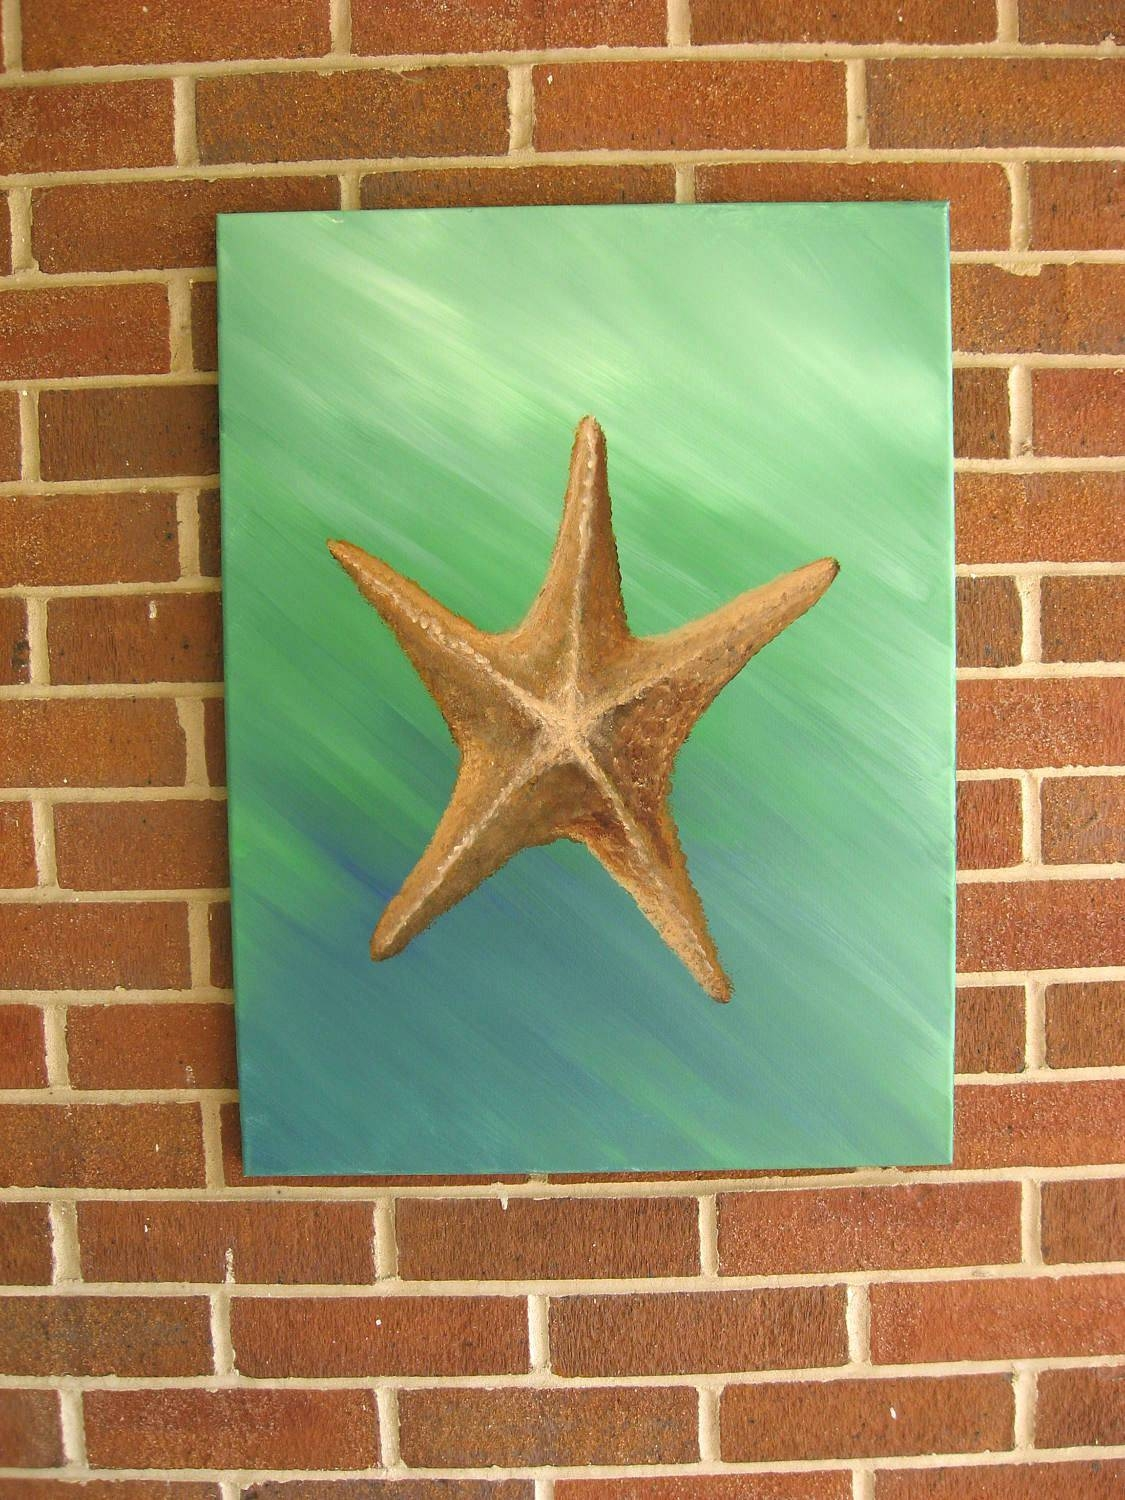 Wall Decor : Starfish Seagrass Wall Decor Pier 1 Imports Splendid In Latest Large Starfish Wall Decors (View 20 of 25)